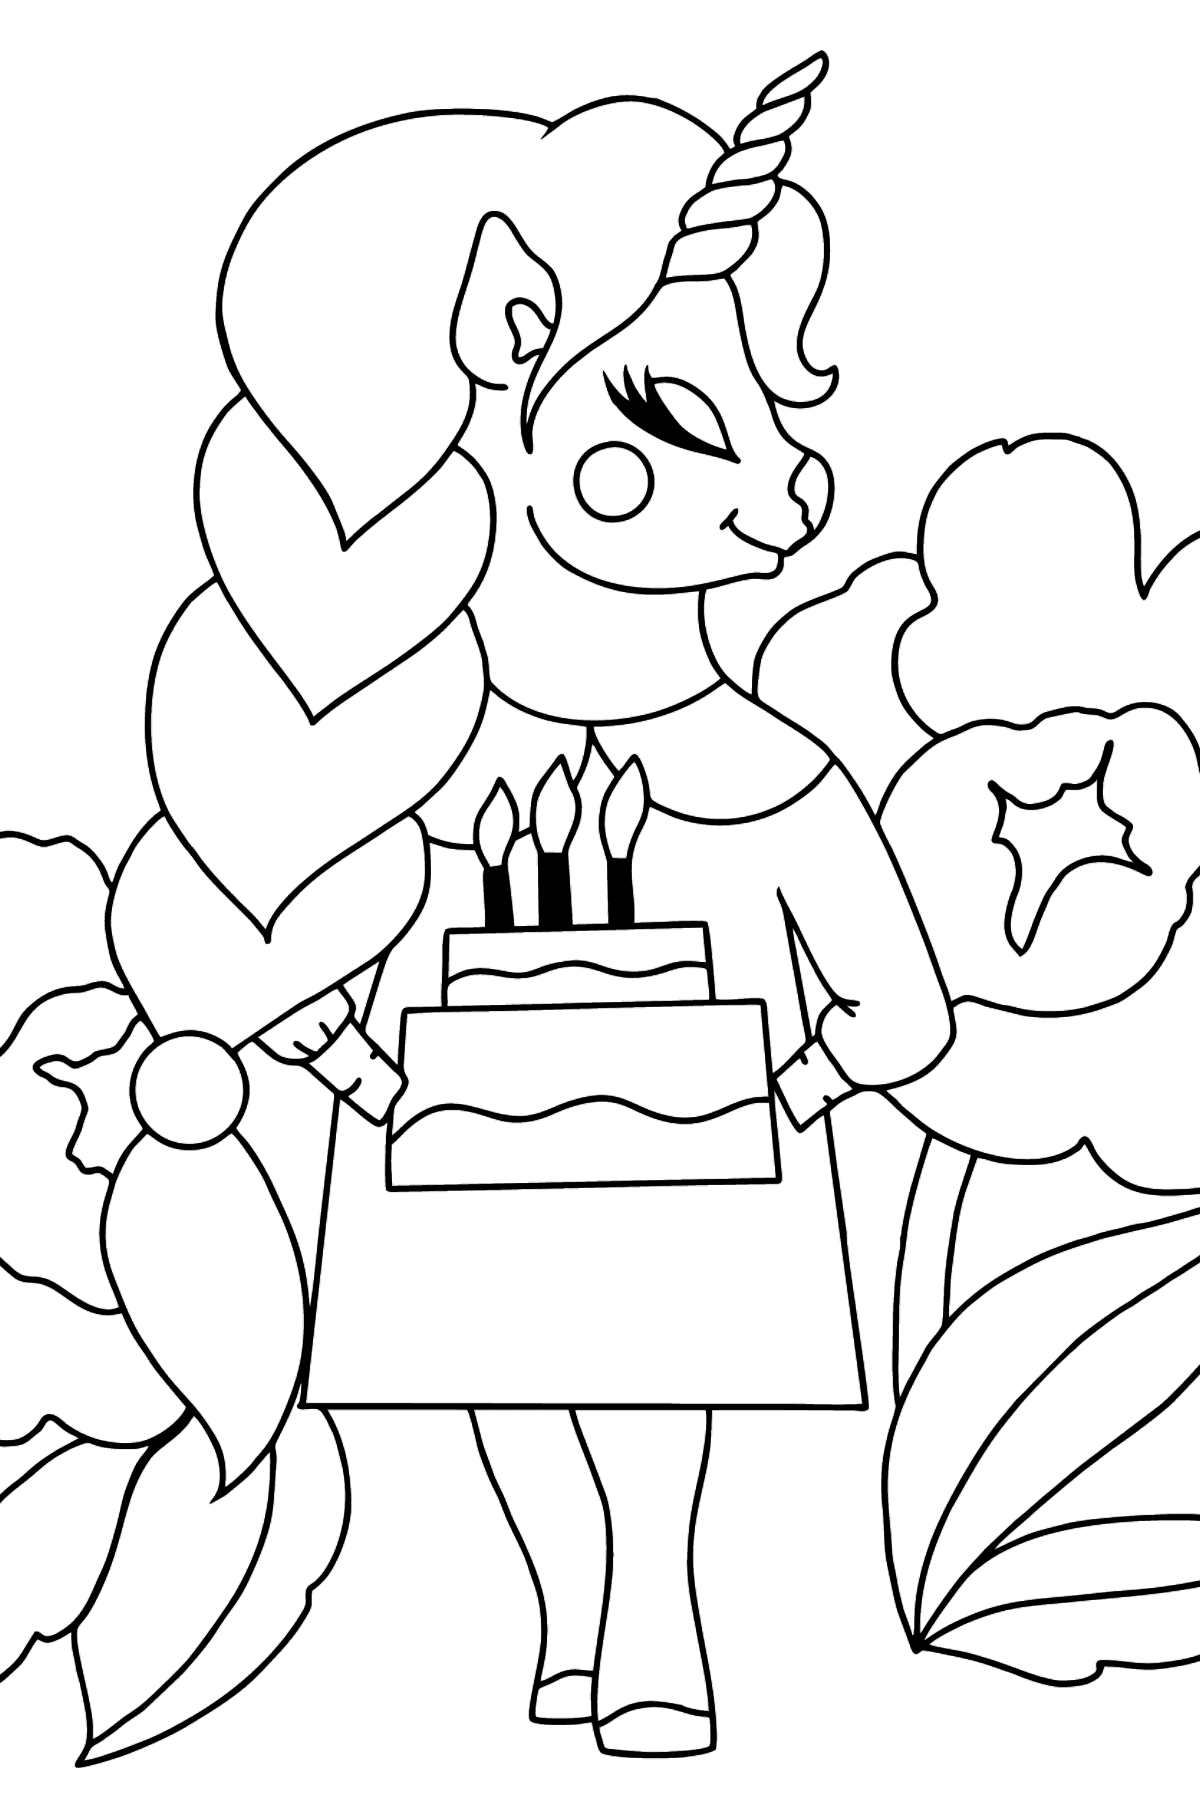 Coloring Page - A Unicorn with a Cake - Coloring Pages for Kids